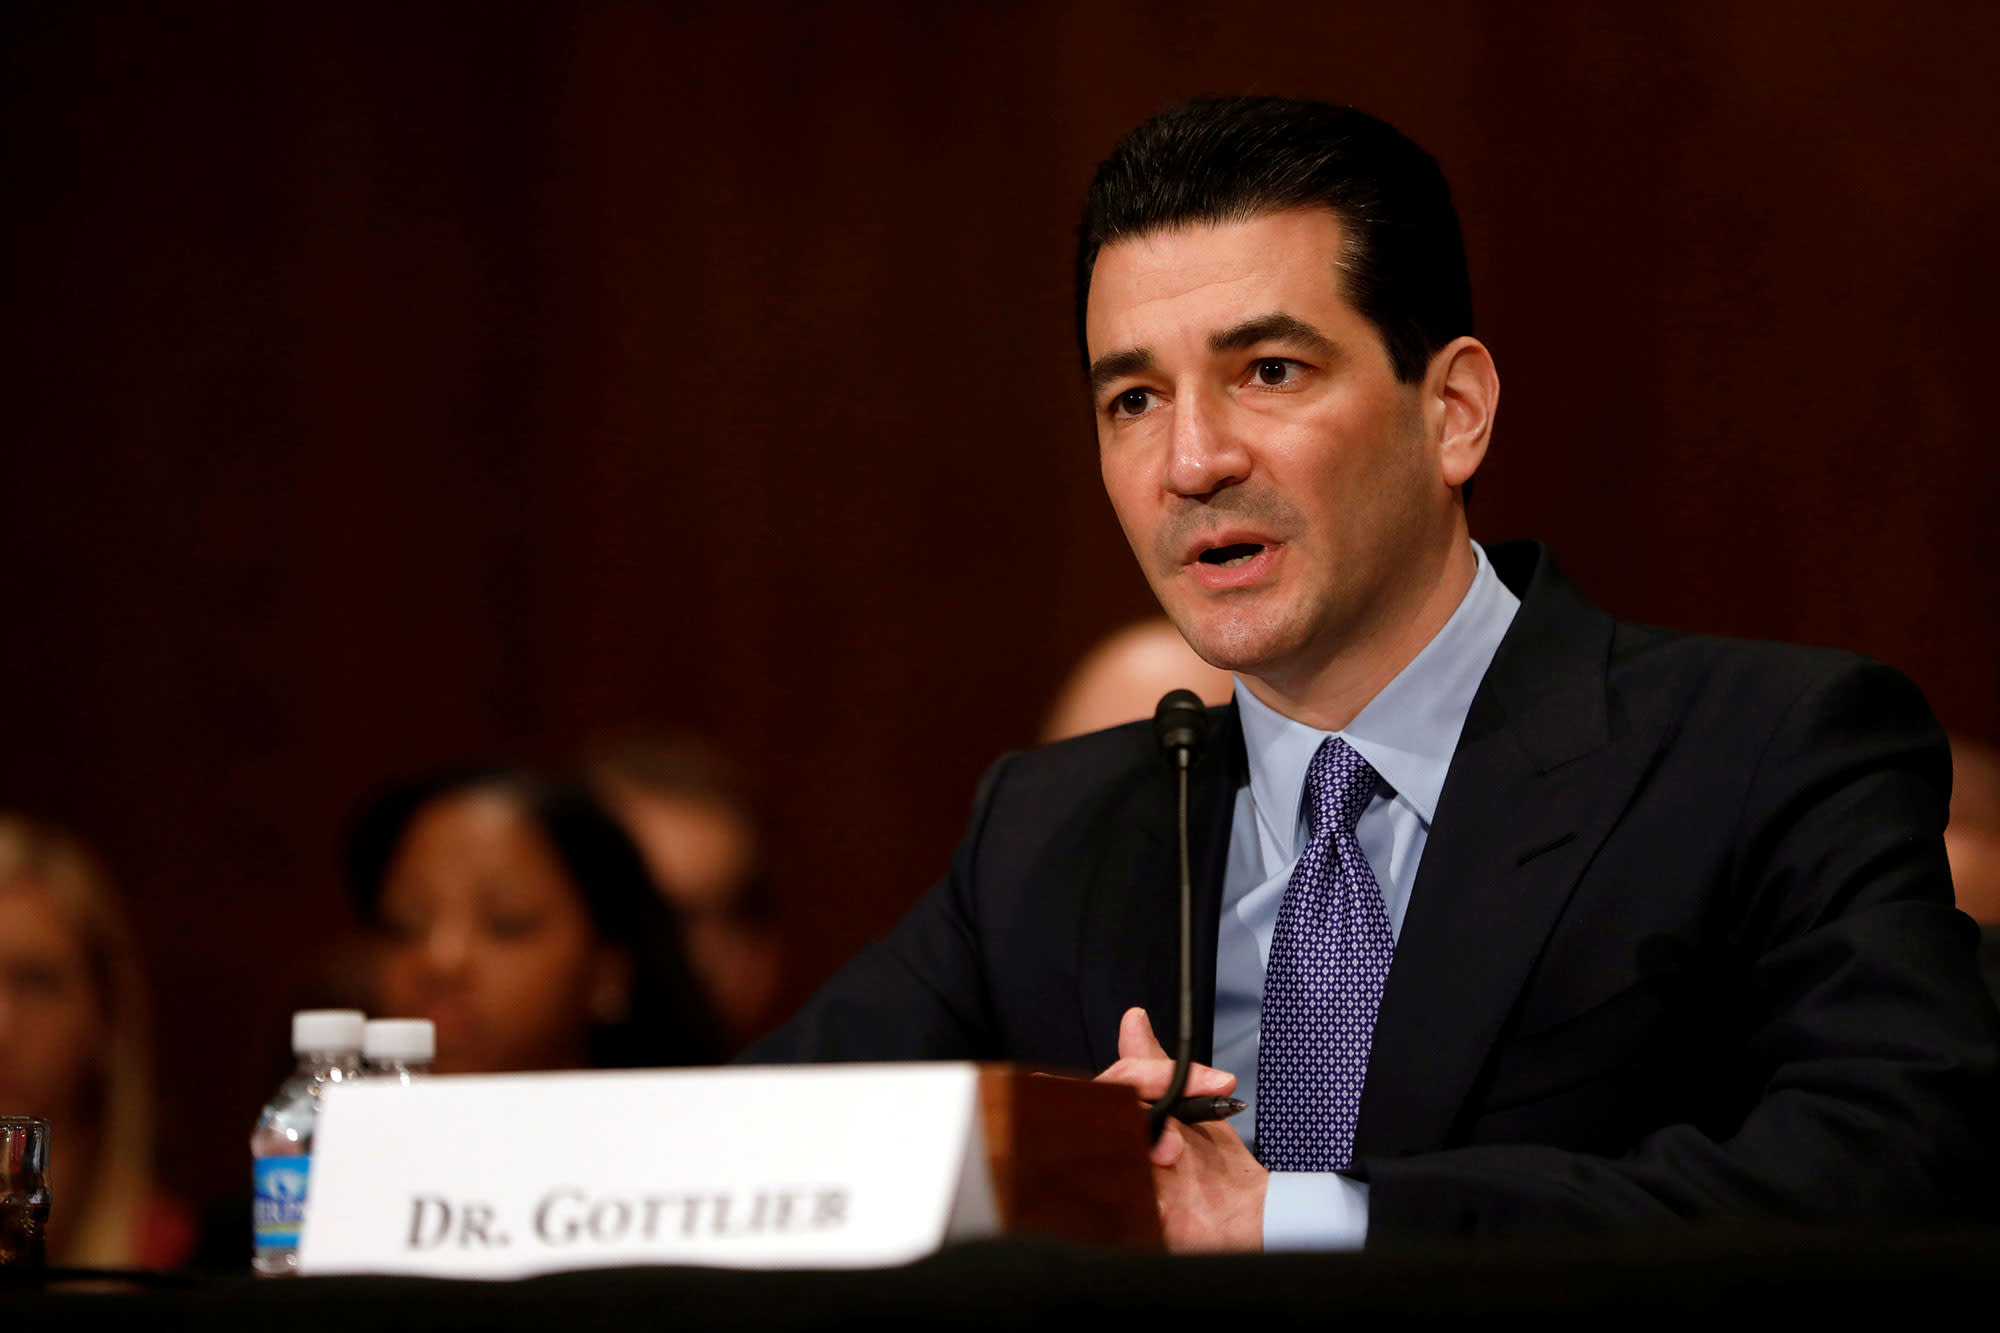 Dr. Scott Gottlieb says full approval of Covid vaccines unlikely to steer hesitant Individuals